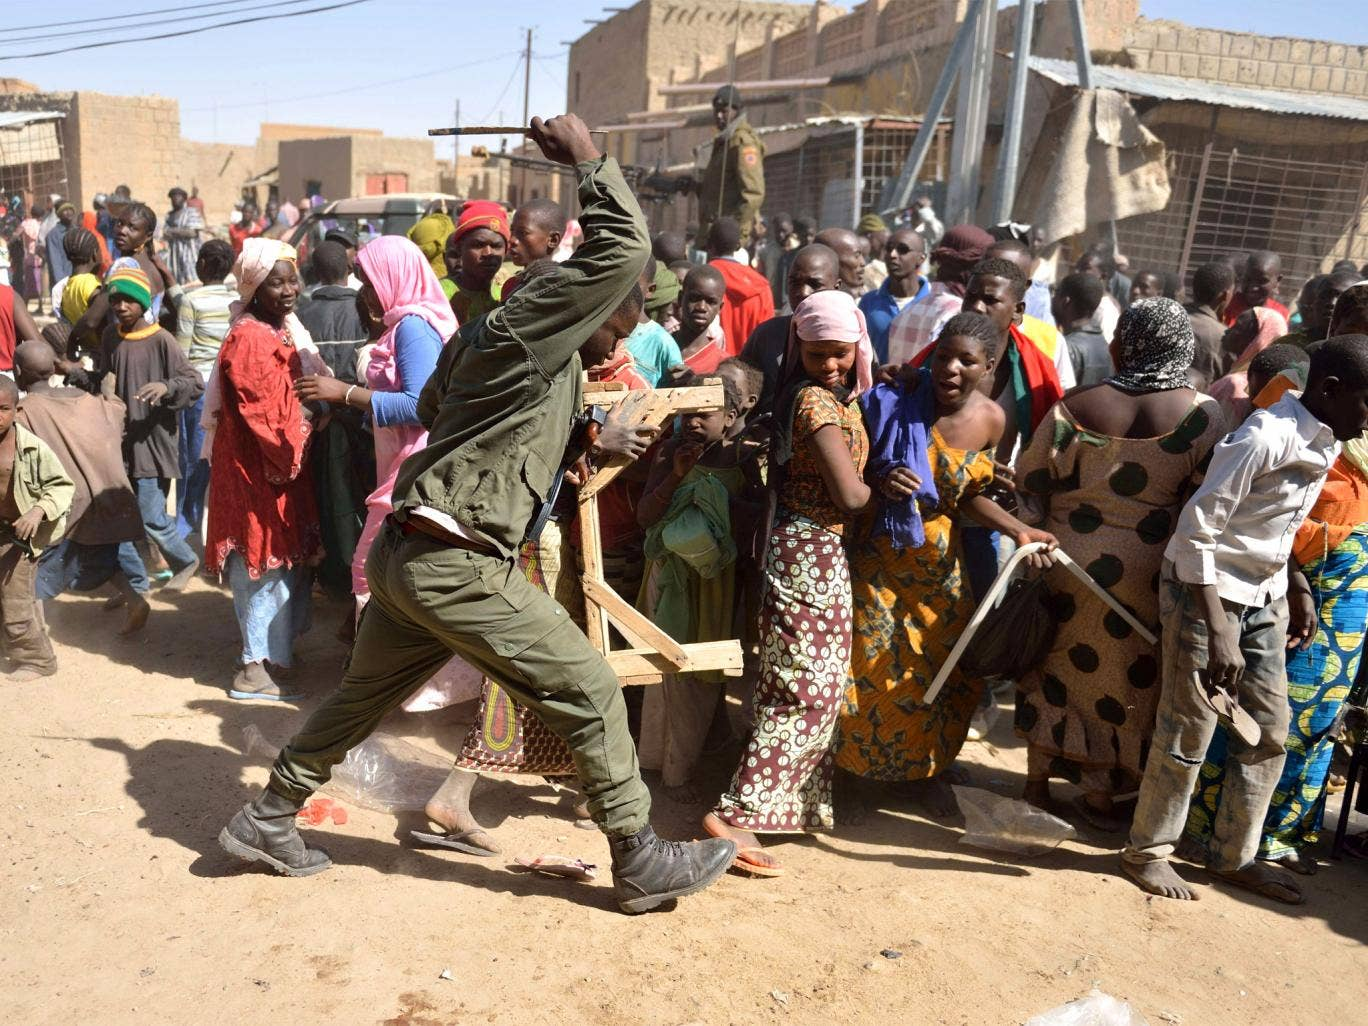 A Malian soldier trys to disperse looters in the streets of Timbuktu